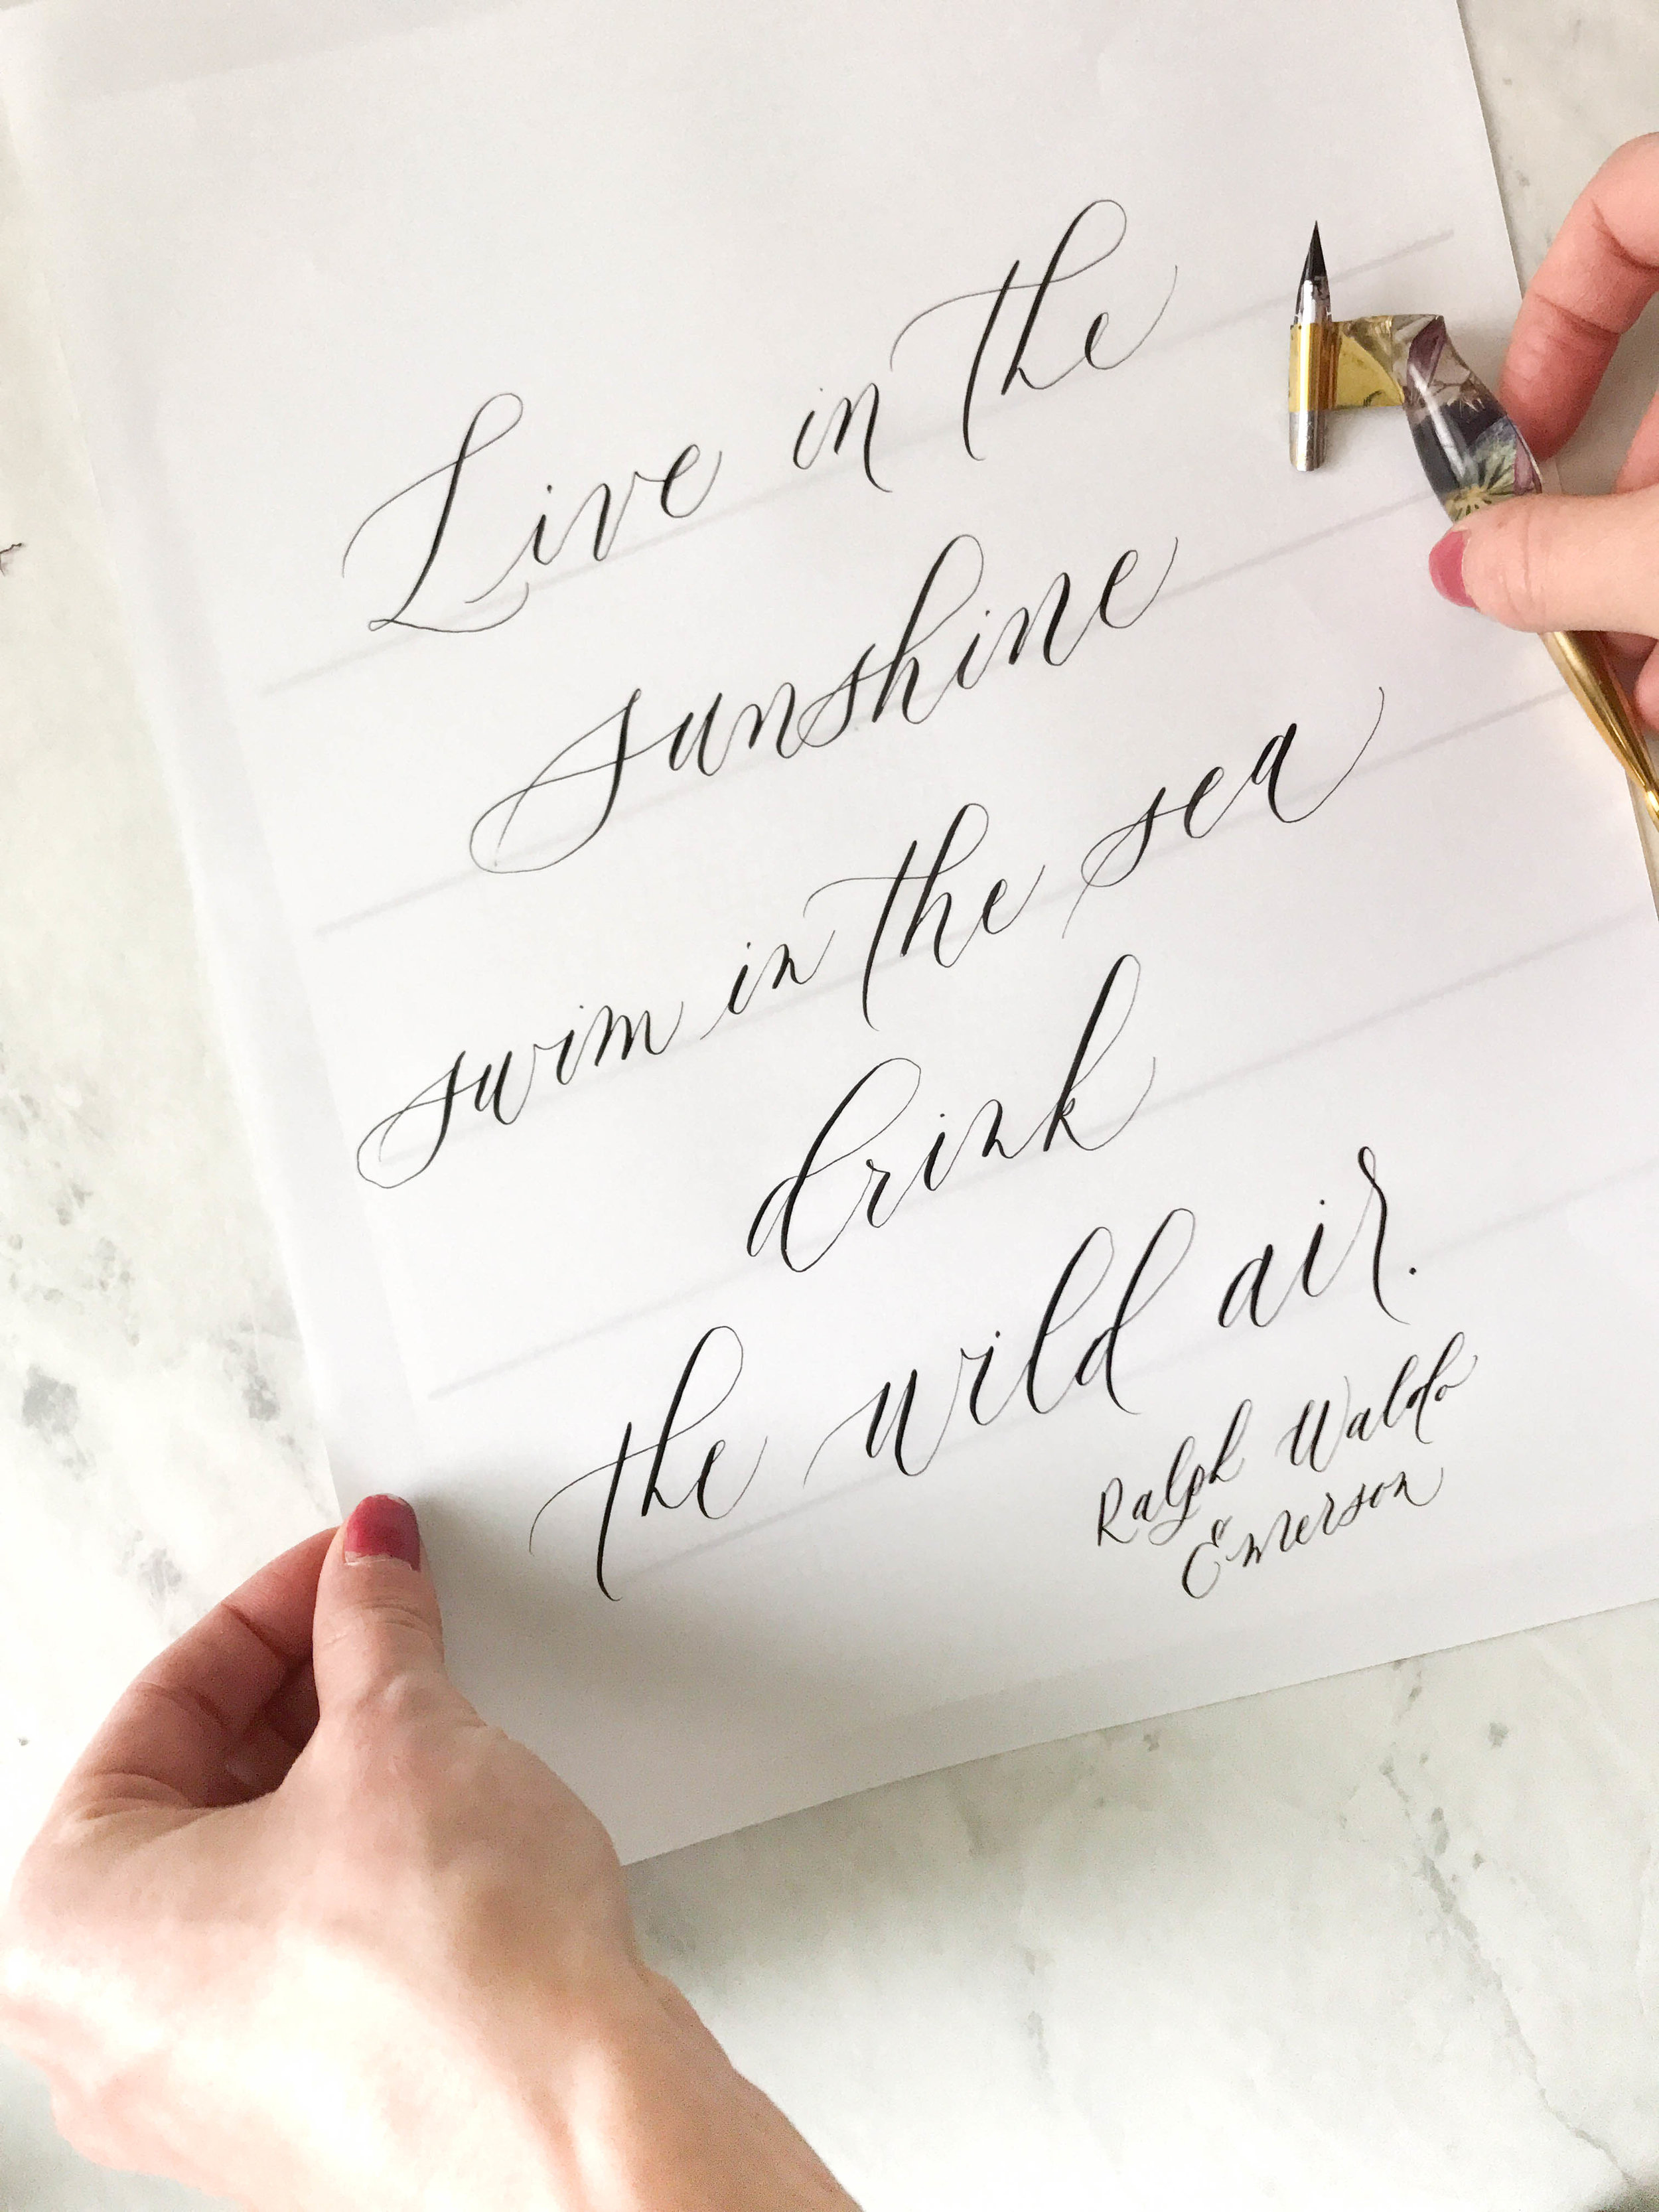 STEP 4:Write away! - Write your quote using your dip pen! When you pull the marker paper off of the template, the lines disappear and you have a perfectly spaced out masterpiece!